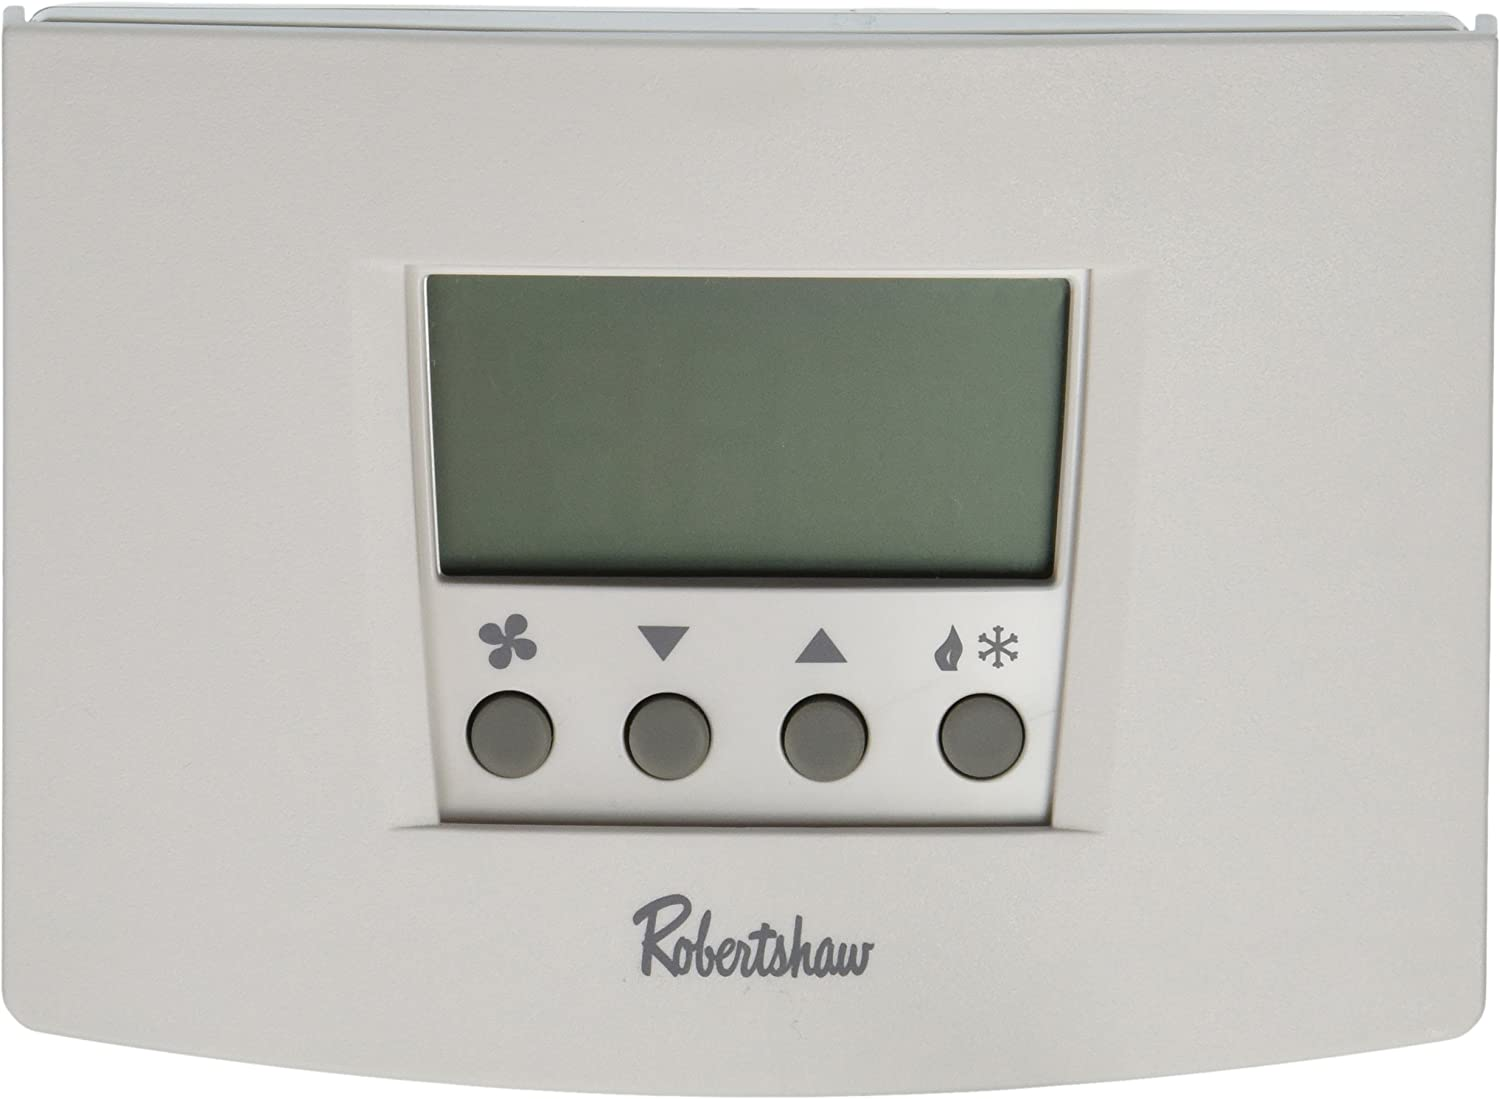 Robertshaw RS5110 1 Heat/1 Cool Digital 5-2 Day Programmable Thermostat Heat Pump, Single Stage